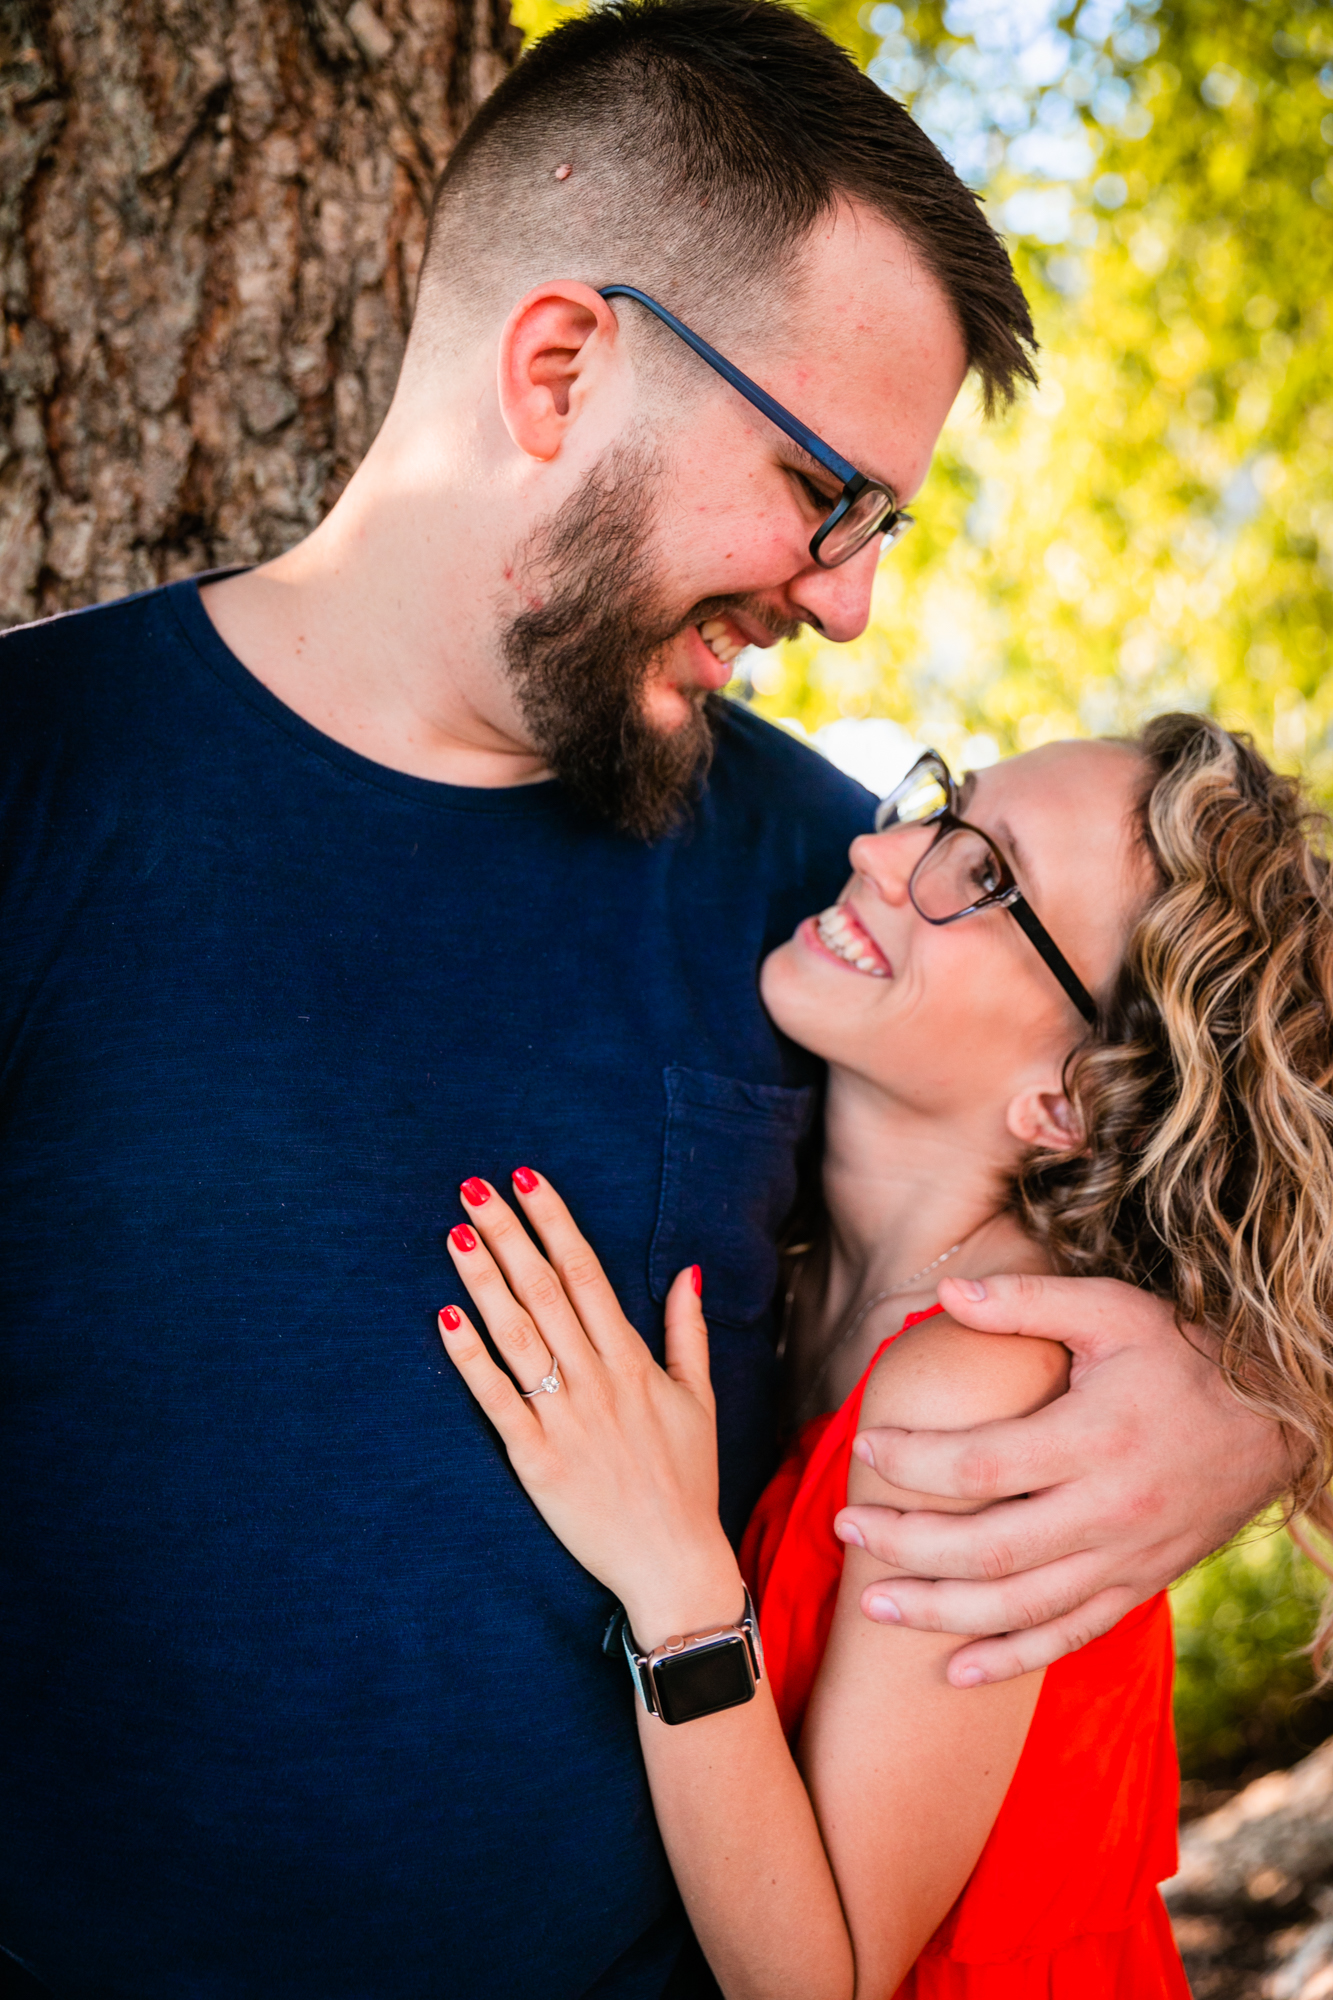 Engagament Photography Philadelphia - LoveStruck Pictures - Schuylkill River Trail-008.jpg